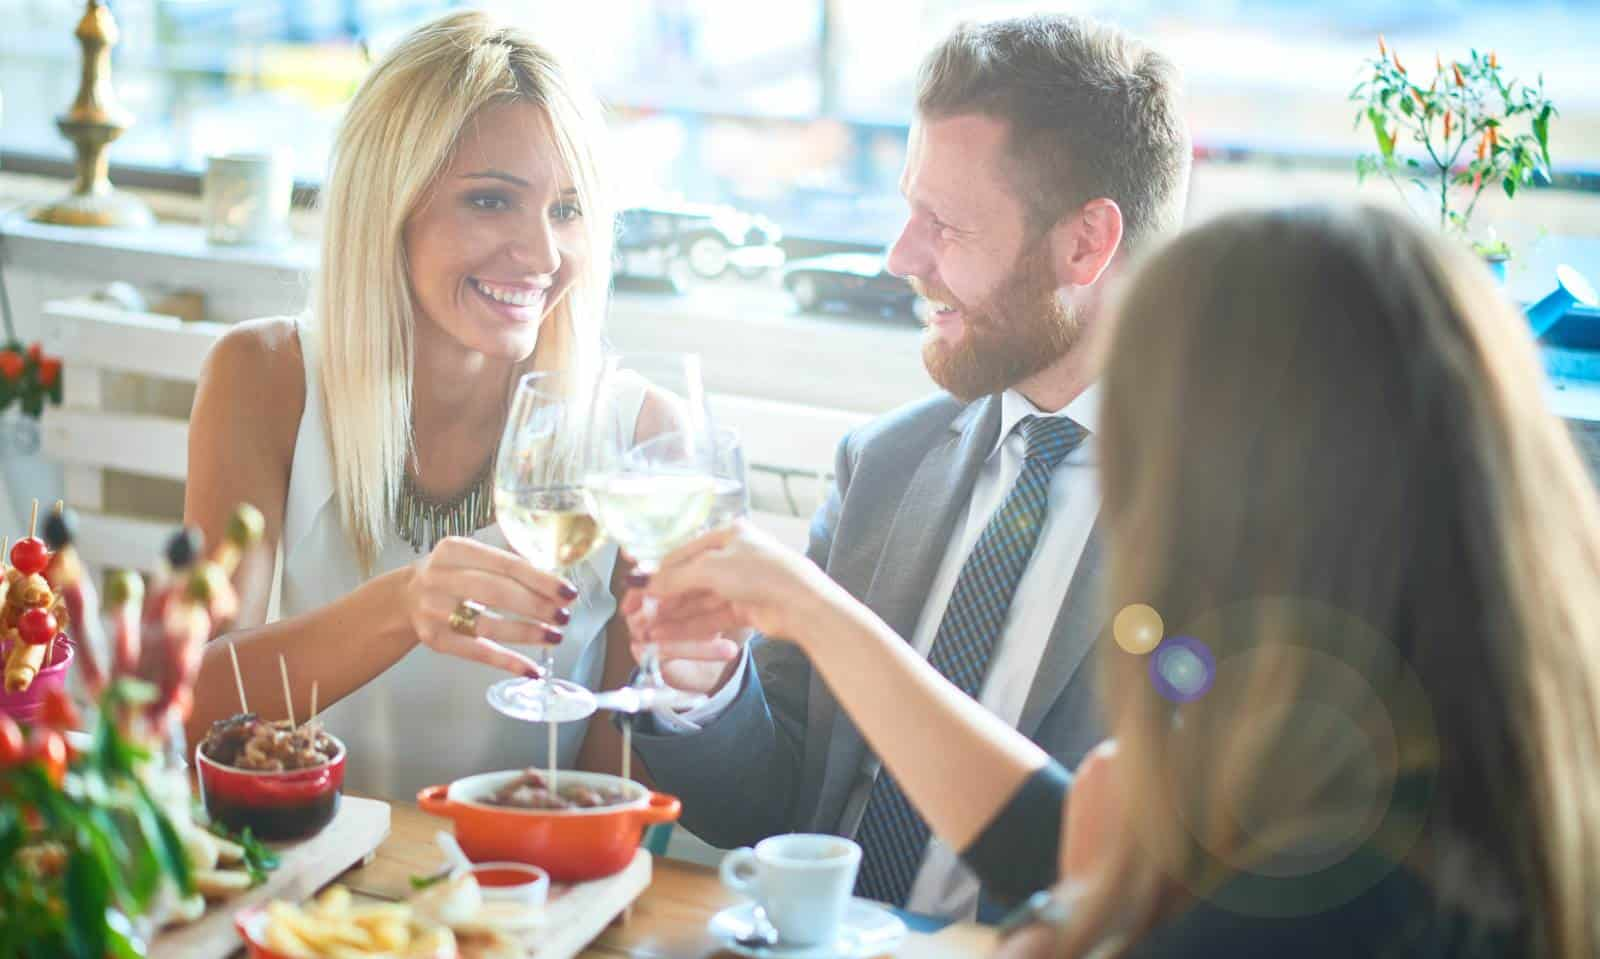 Business people enjoy a restaurant meal that may incur fringe benefits tax for their employer